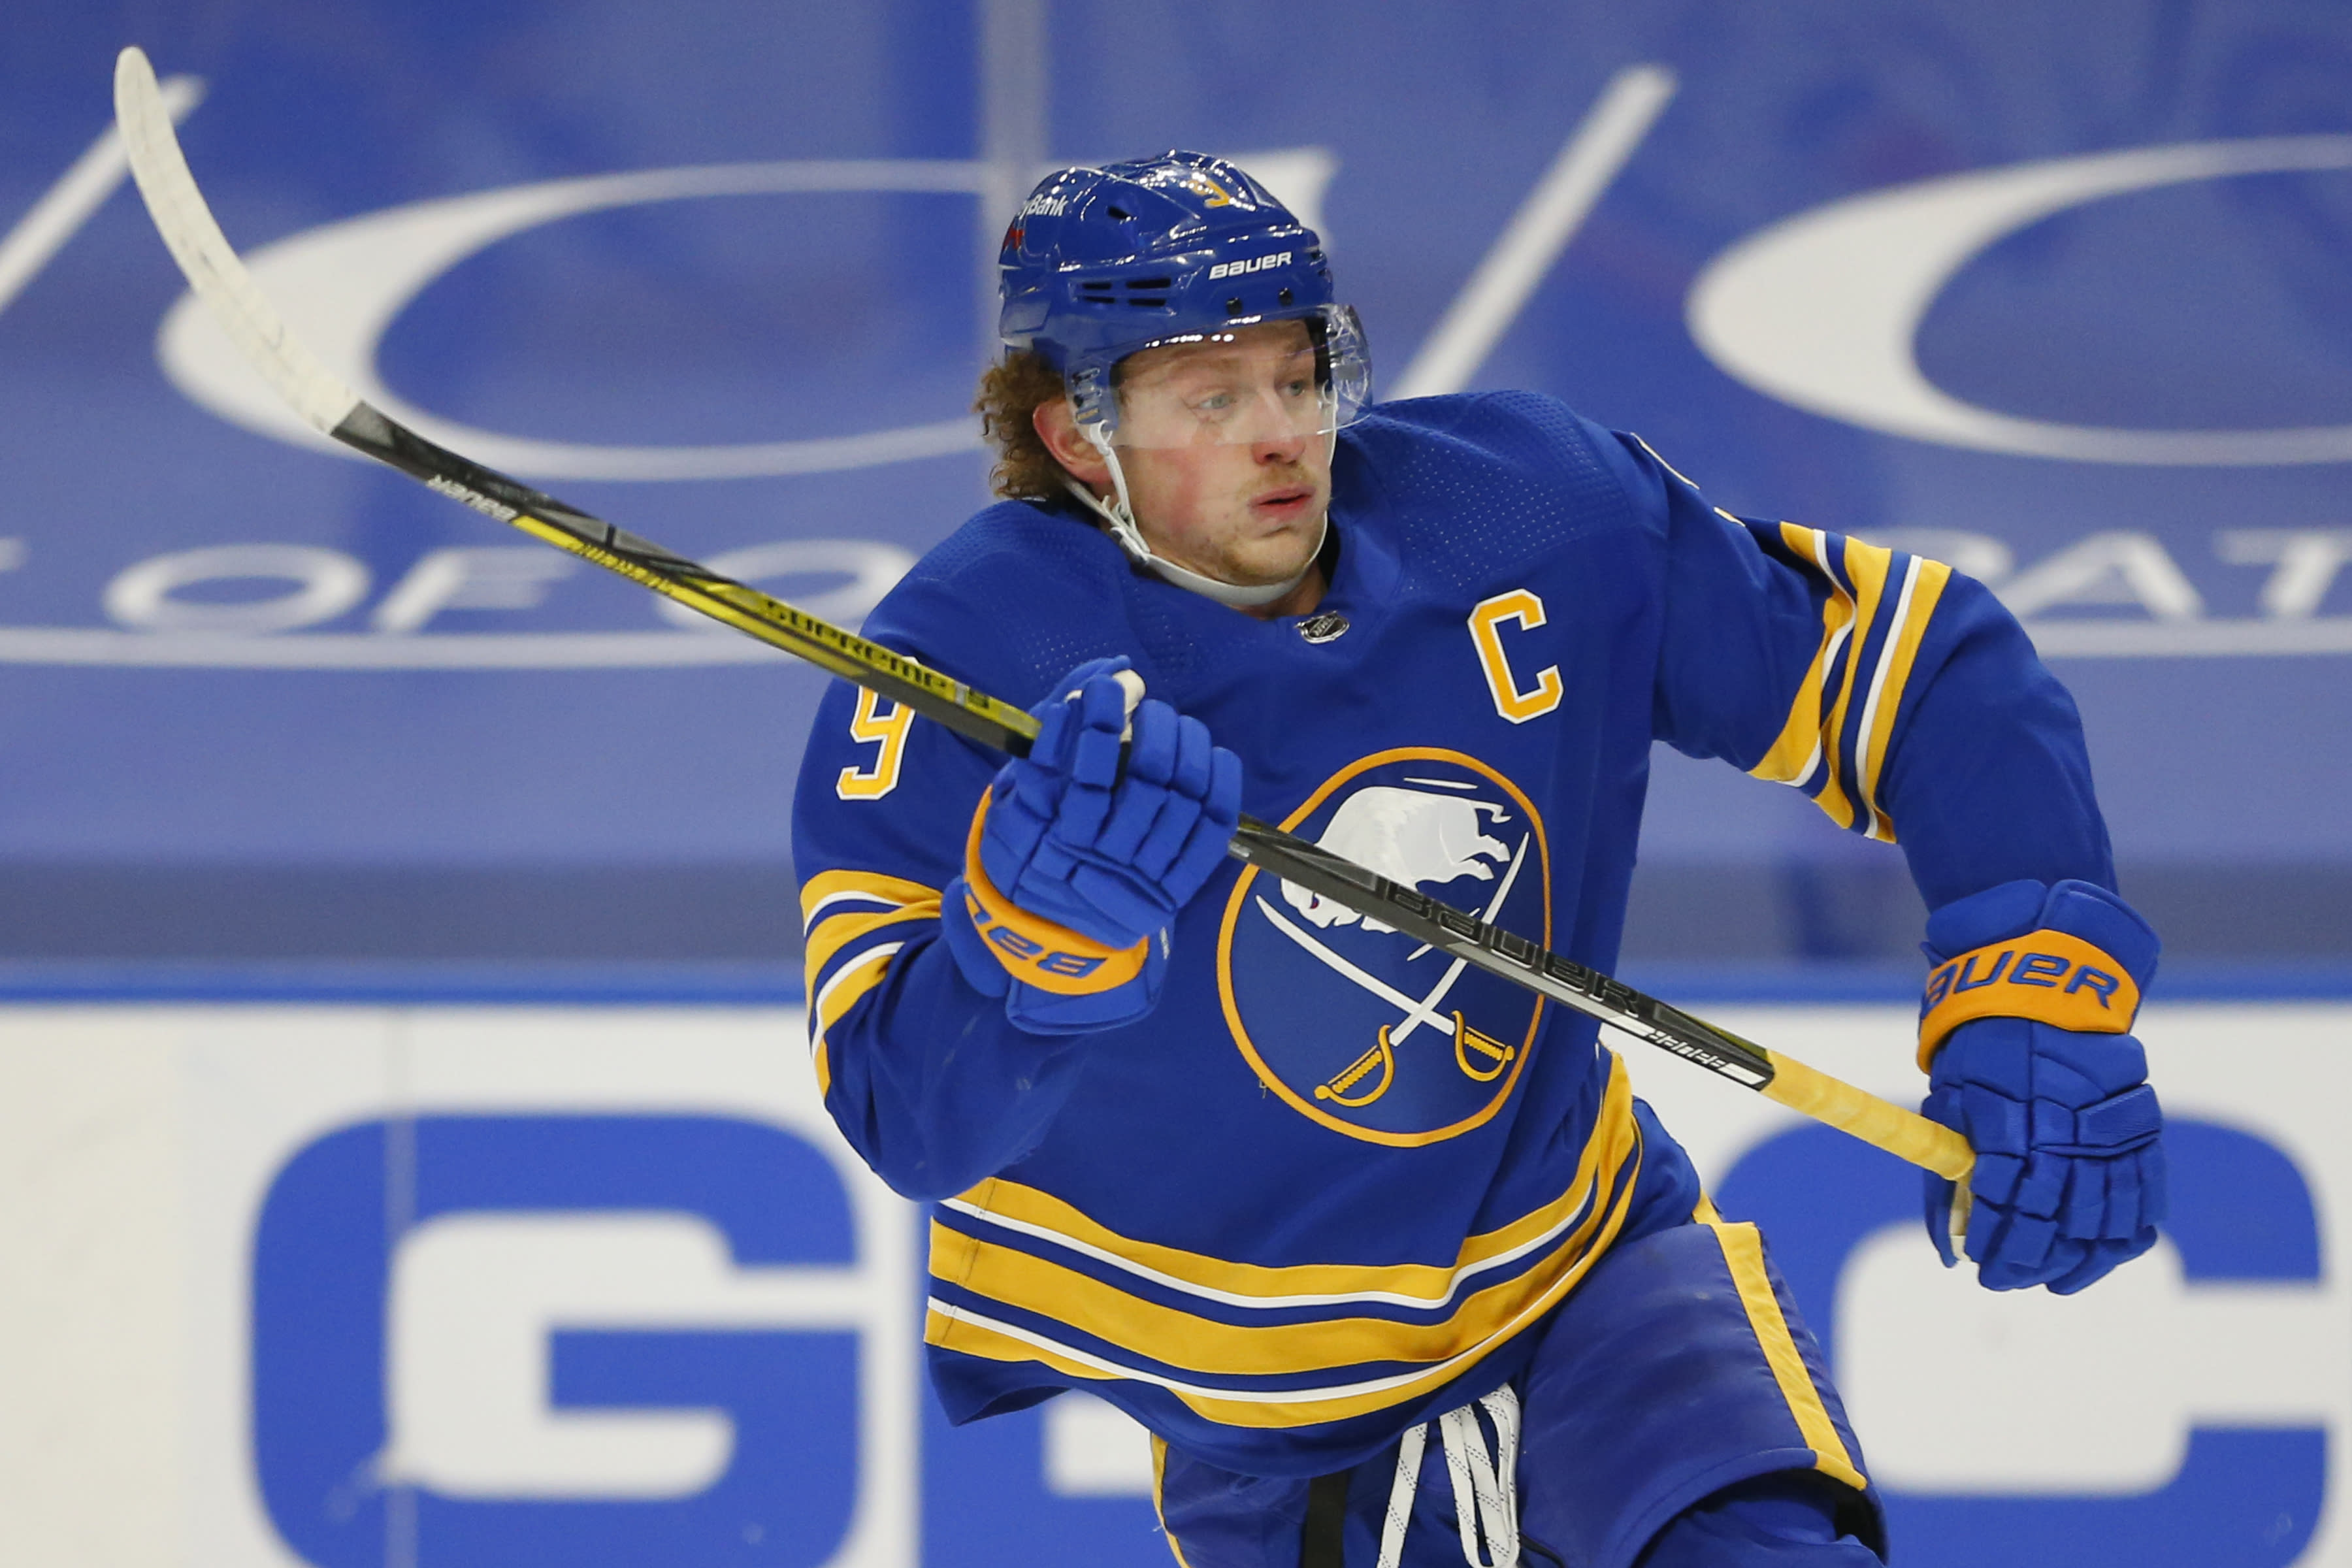 AP Source: Eichel to report for Sabres' pre-camp physical